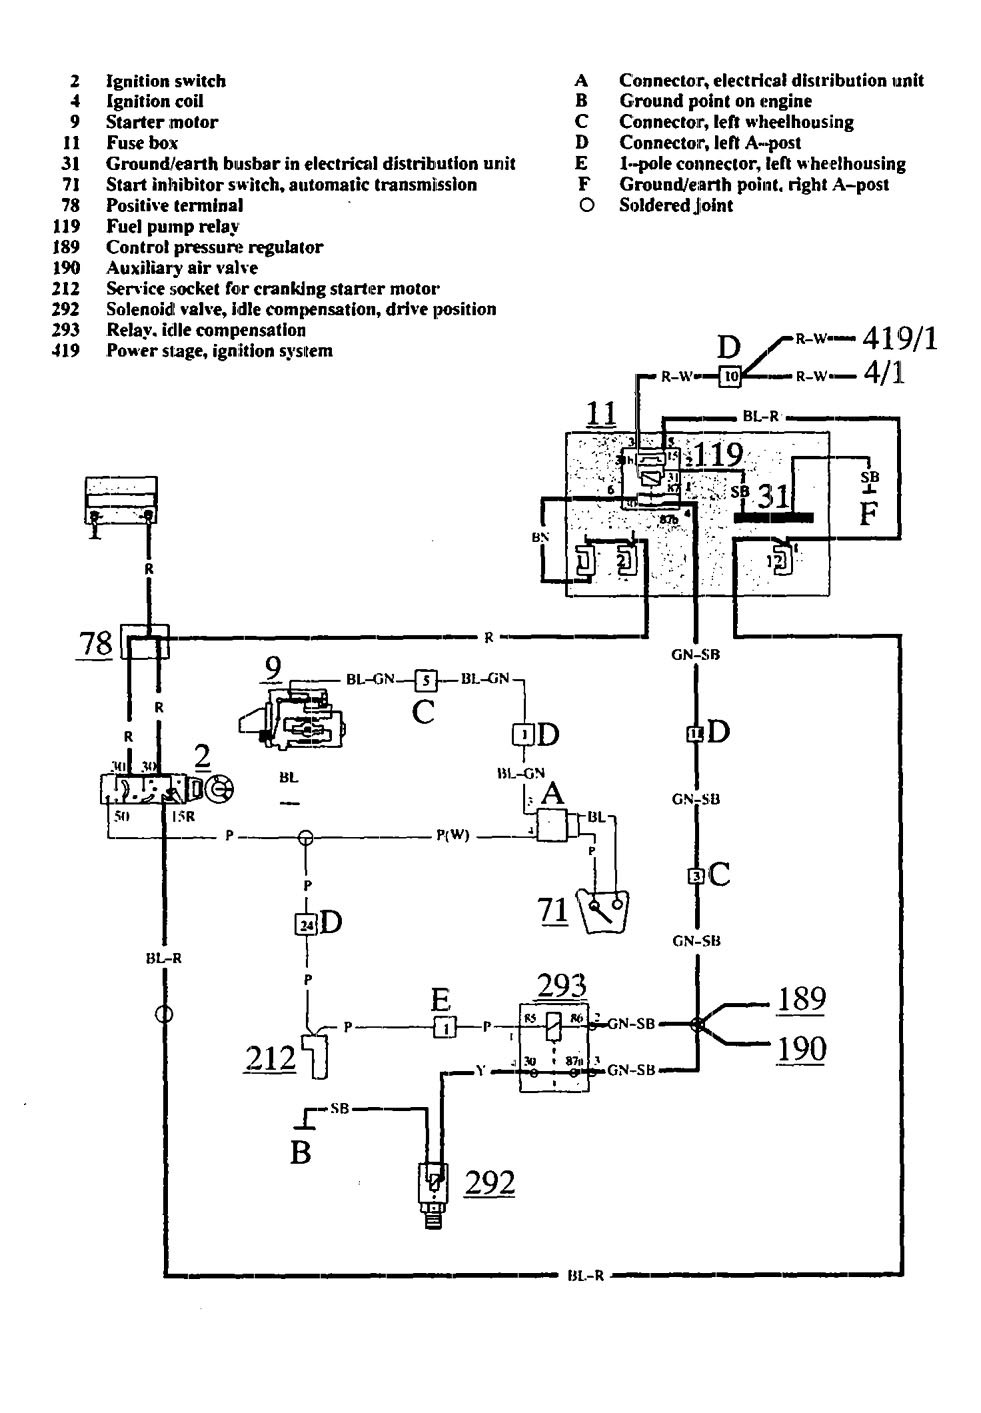 Volvo 740 Wiring Diagram 1991 Diagrams Truck Engine Fuel Pump Carknowledge Vn